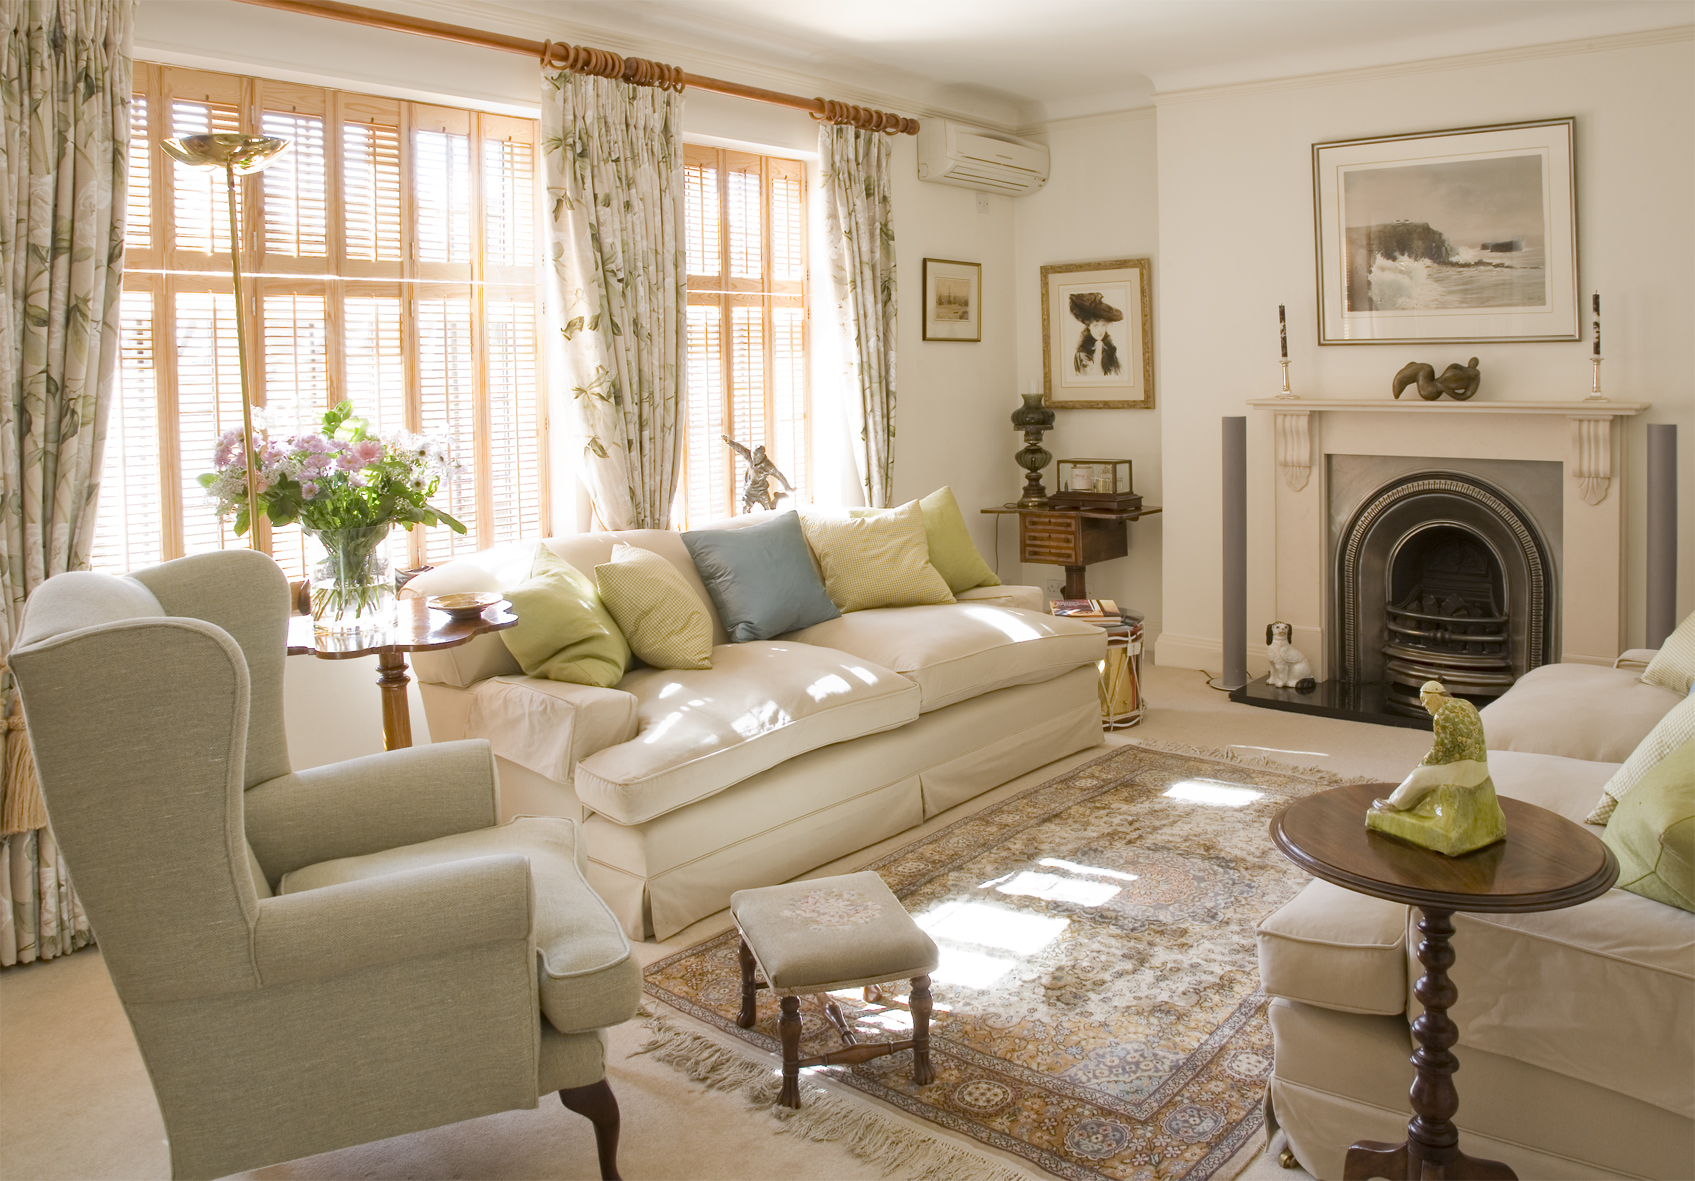 English Country In The City GAFF Adrienne Chinn 39 S Design Blog